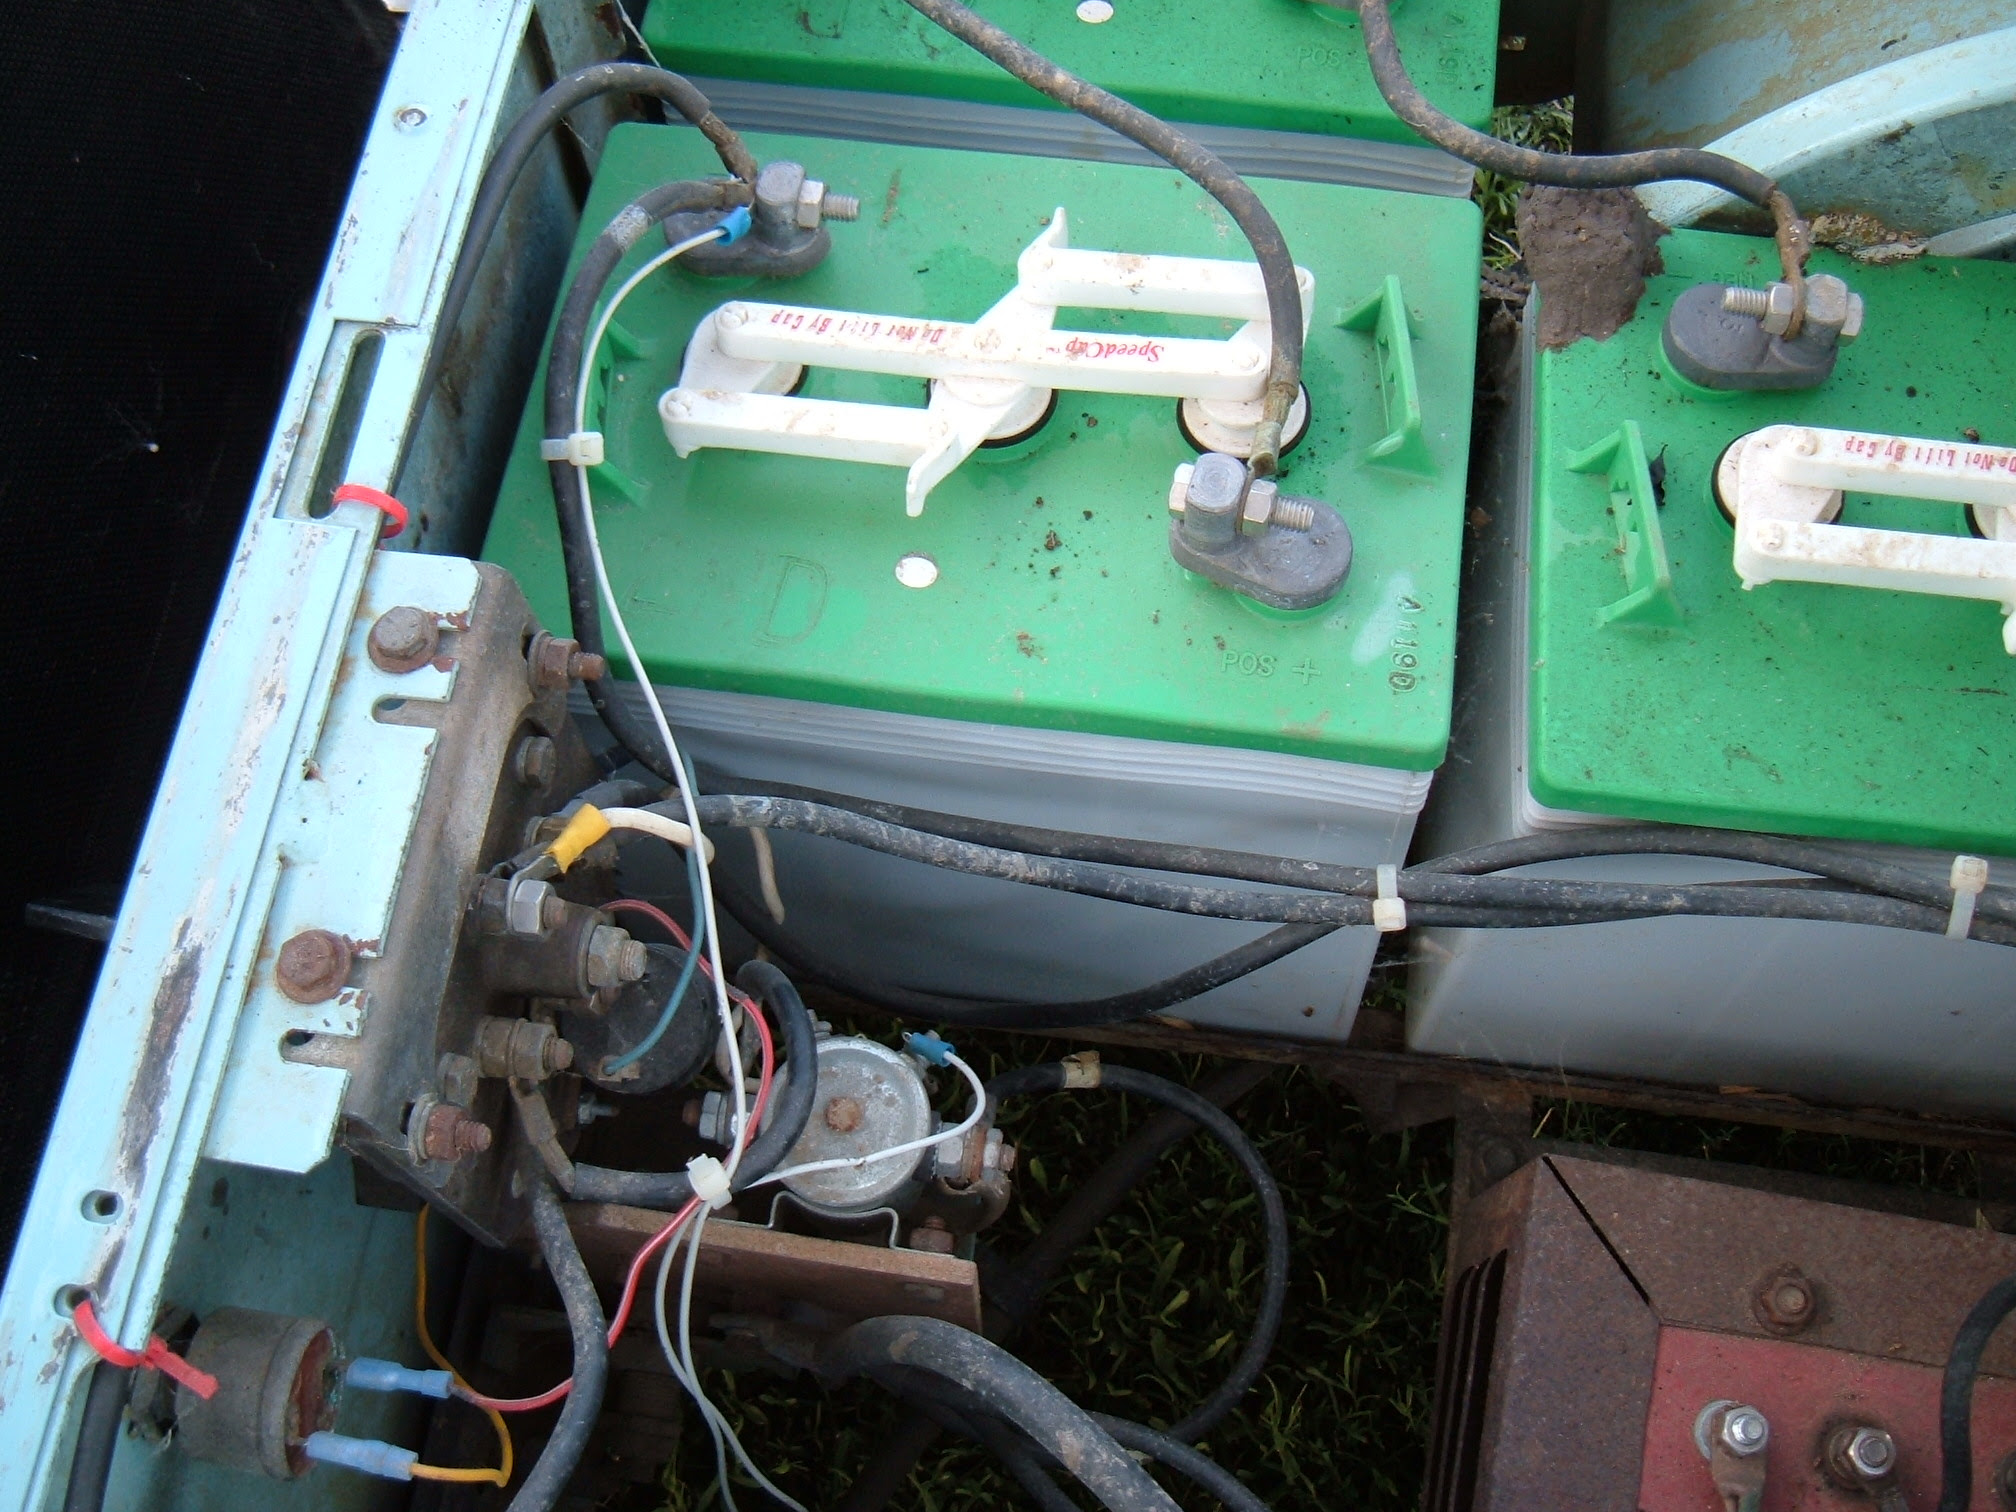 My electric golf cart is an older one app 40 yrs old or ...